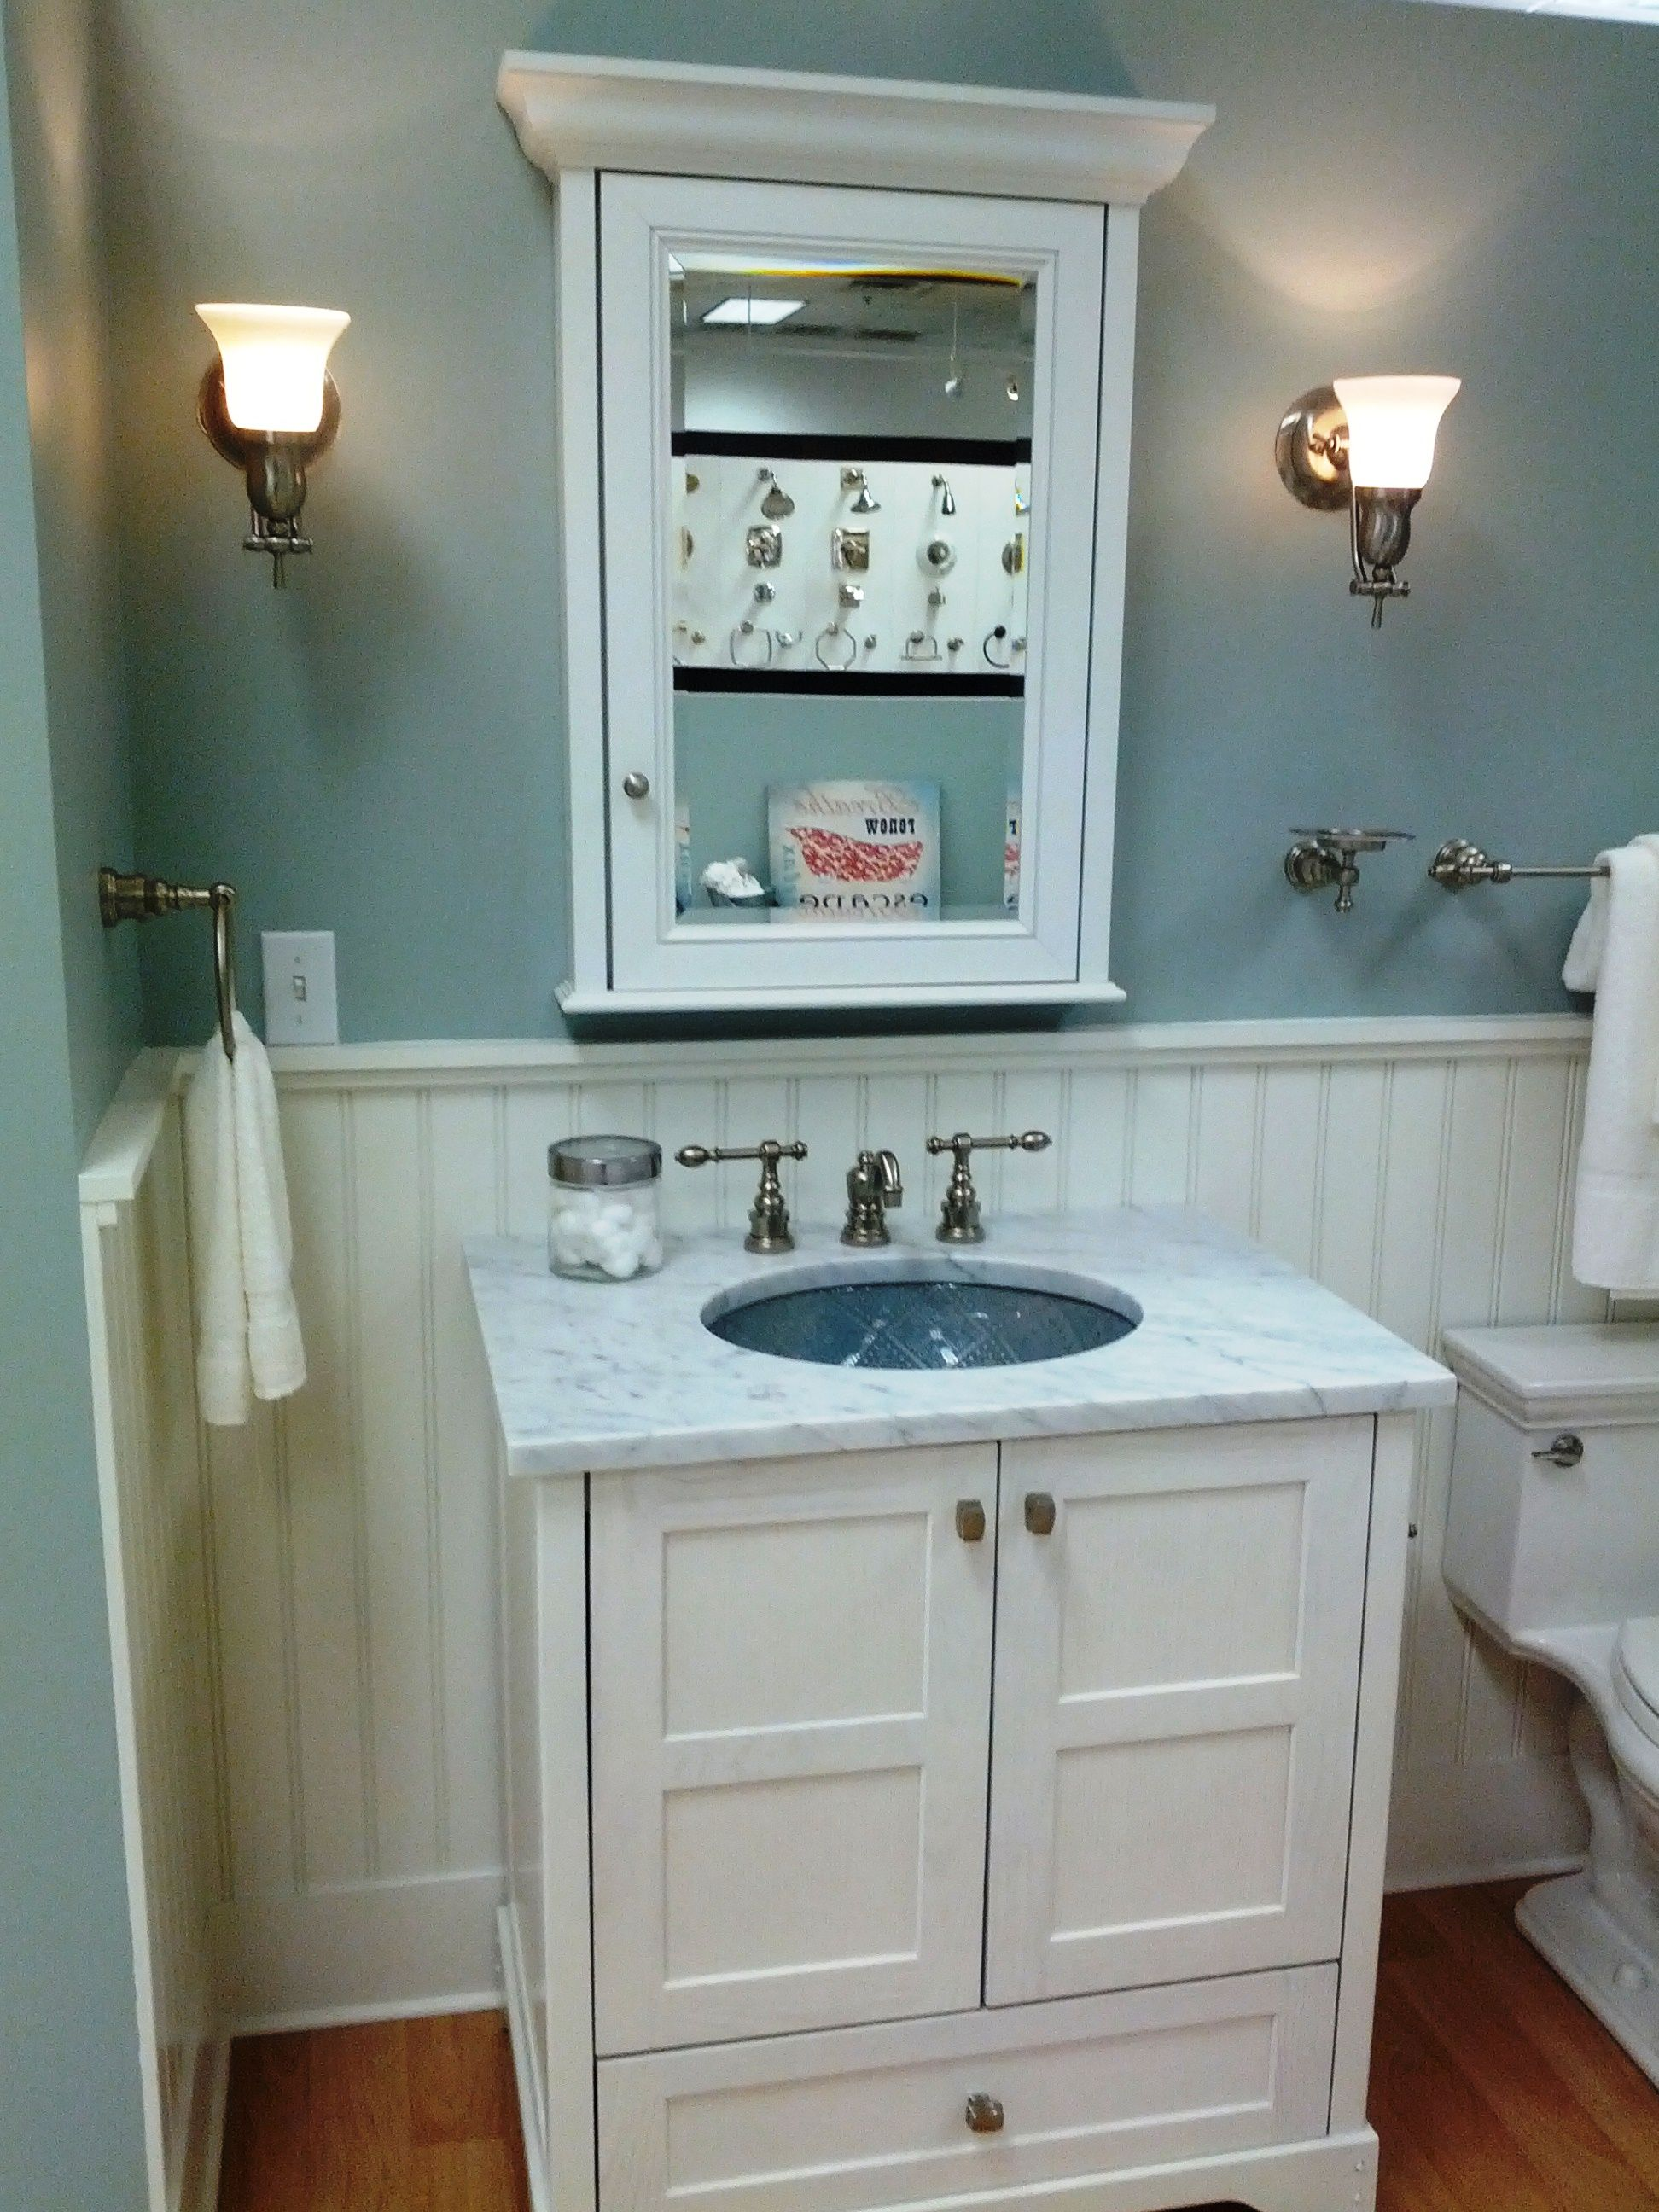 Ordinary White Vanities For Small Bathrooms Part - 6: Bathroom Interior Awesome White Blue Background Best Small Design  Inspiration With Stylish Ceramic Pedestal Sink A. Small Bathroom Wall  Colors Best Modern ...